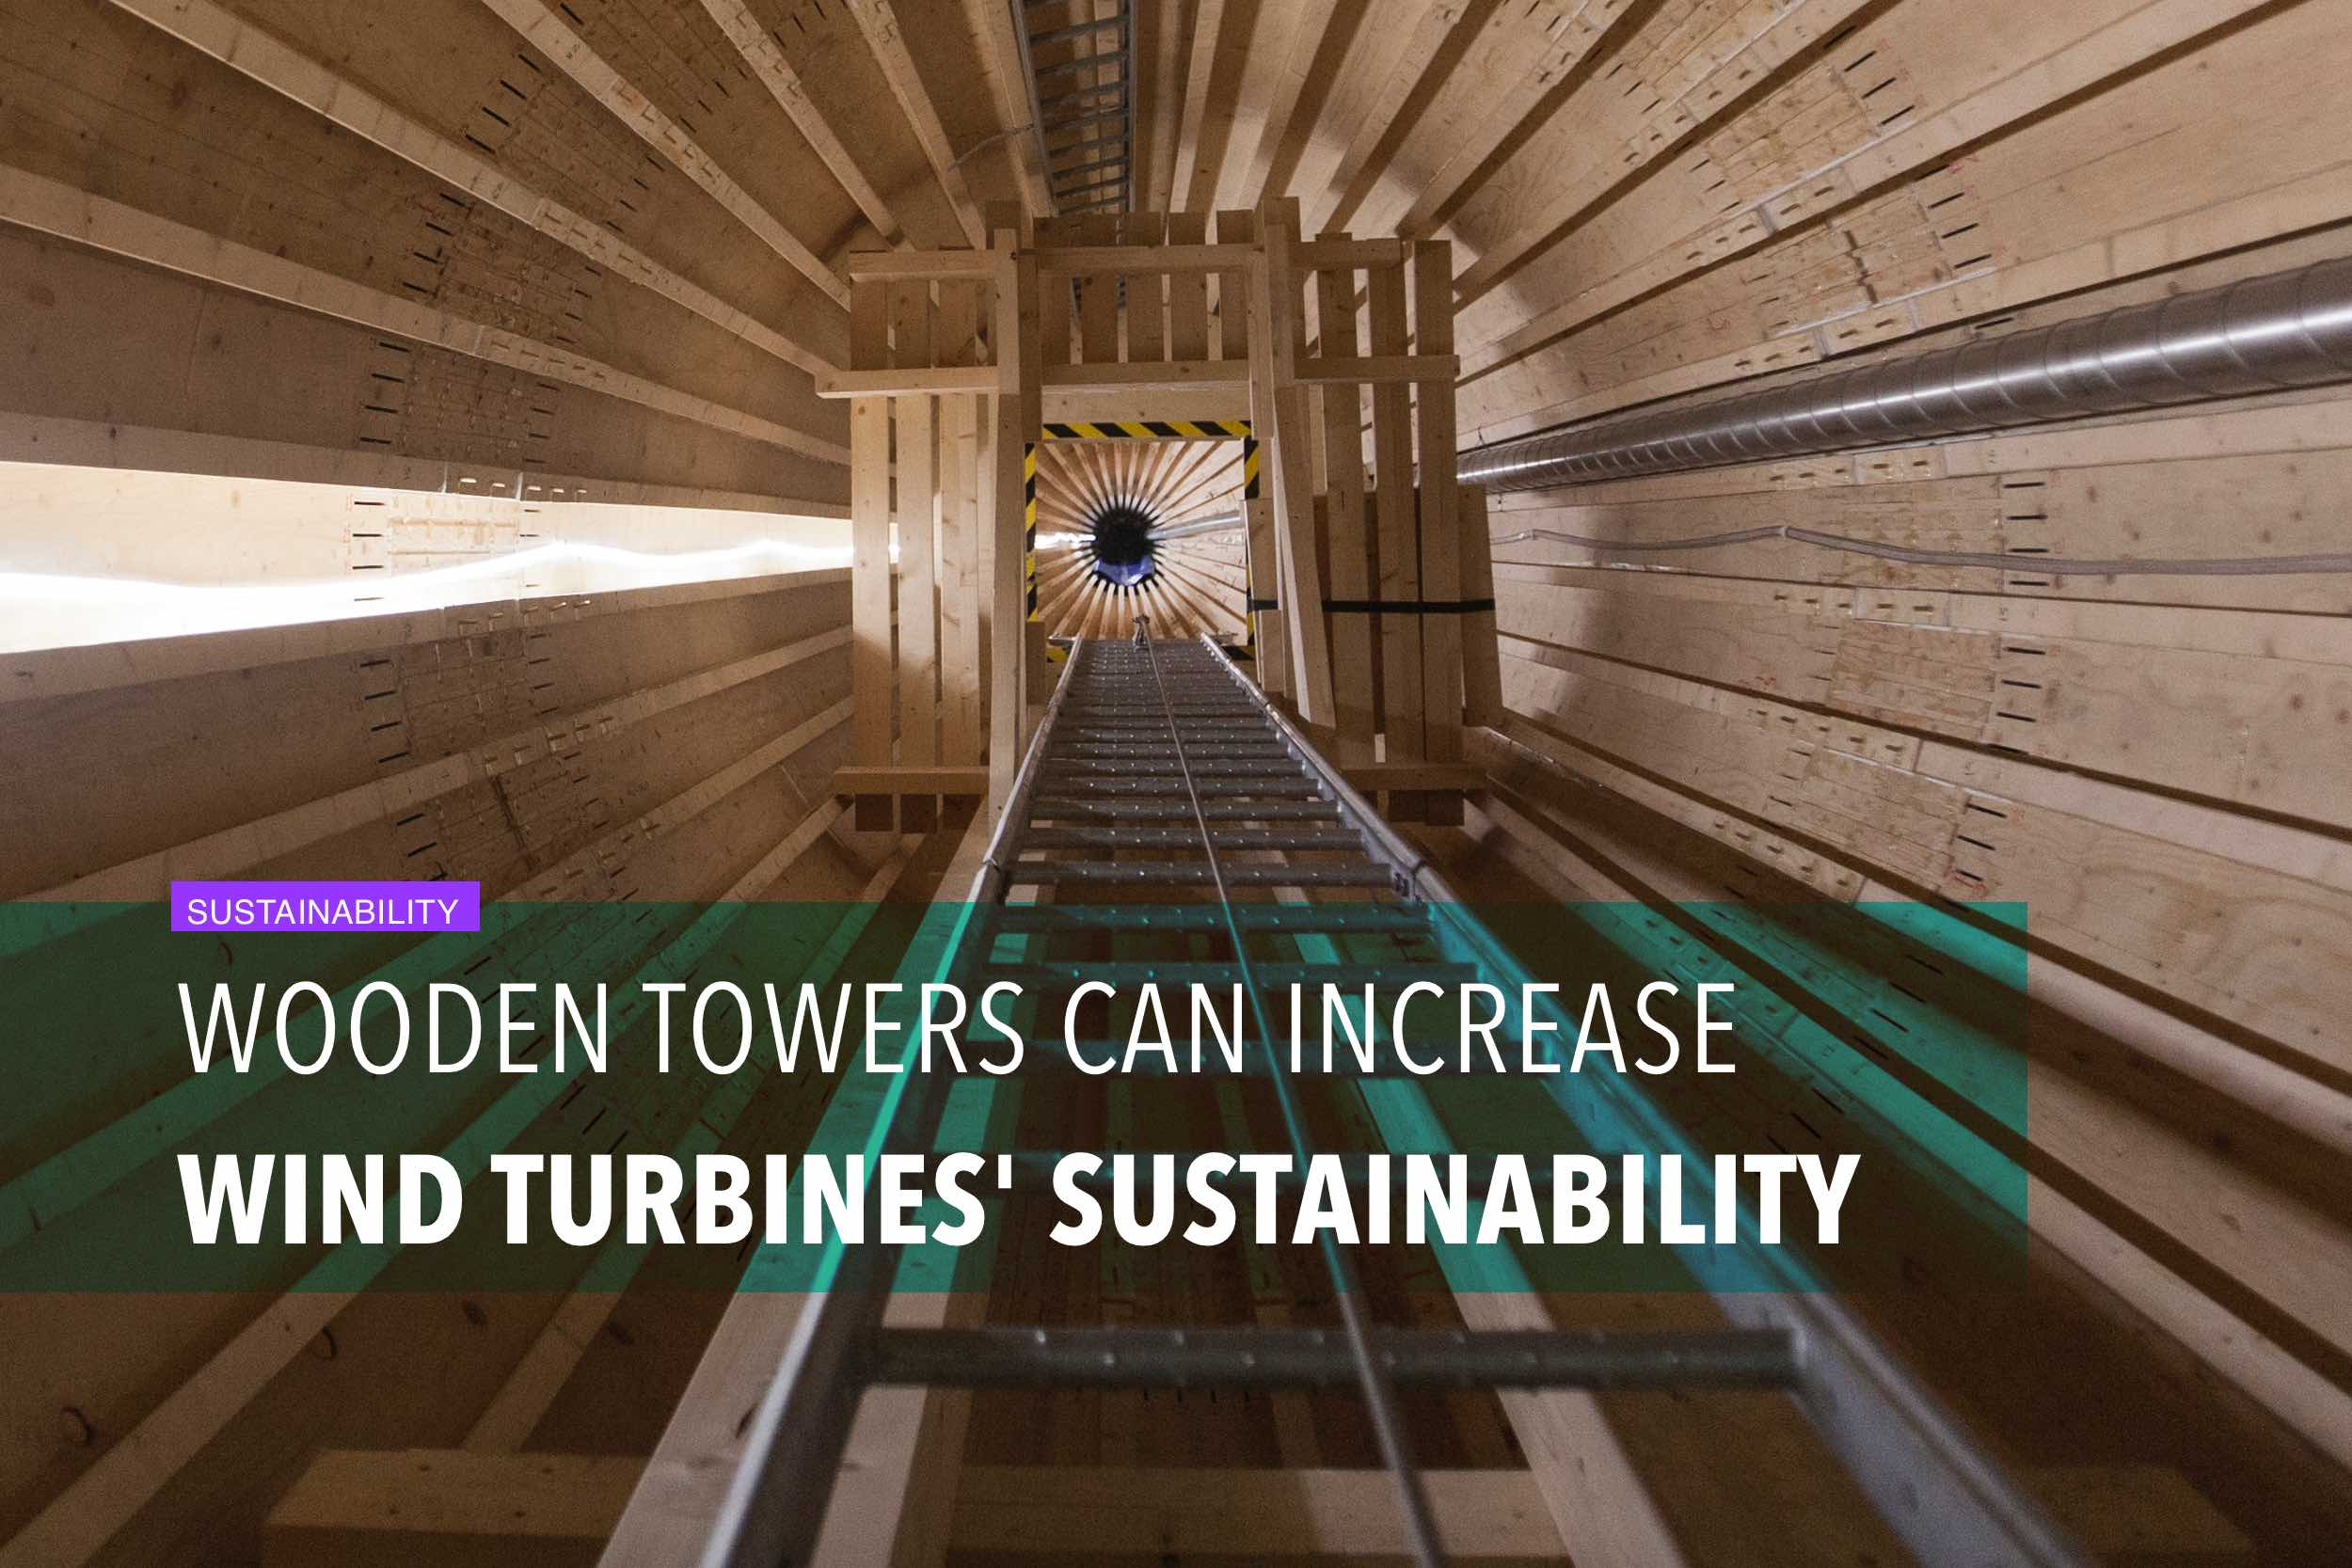 Wooden towers can increase wind turbines' sustainability